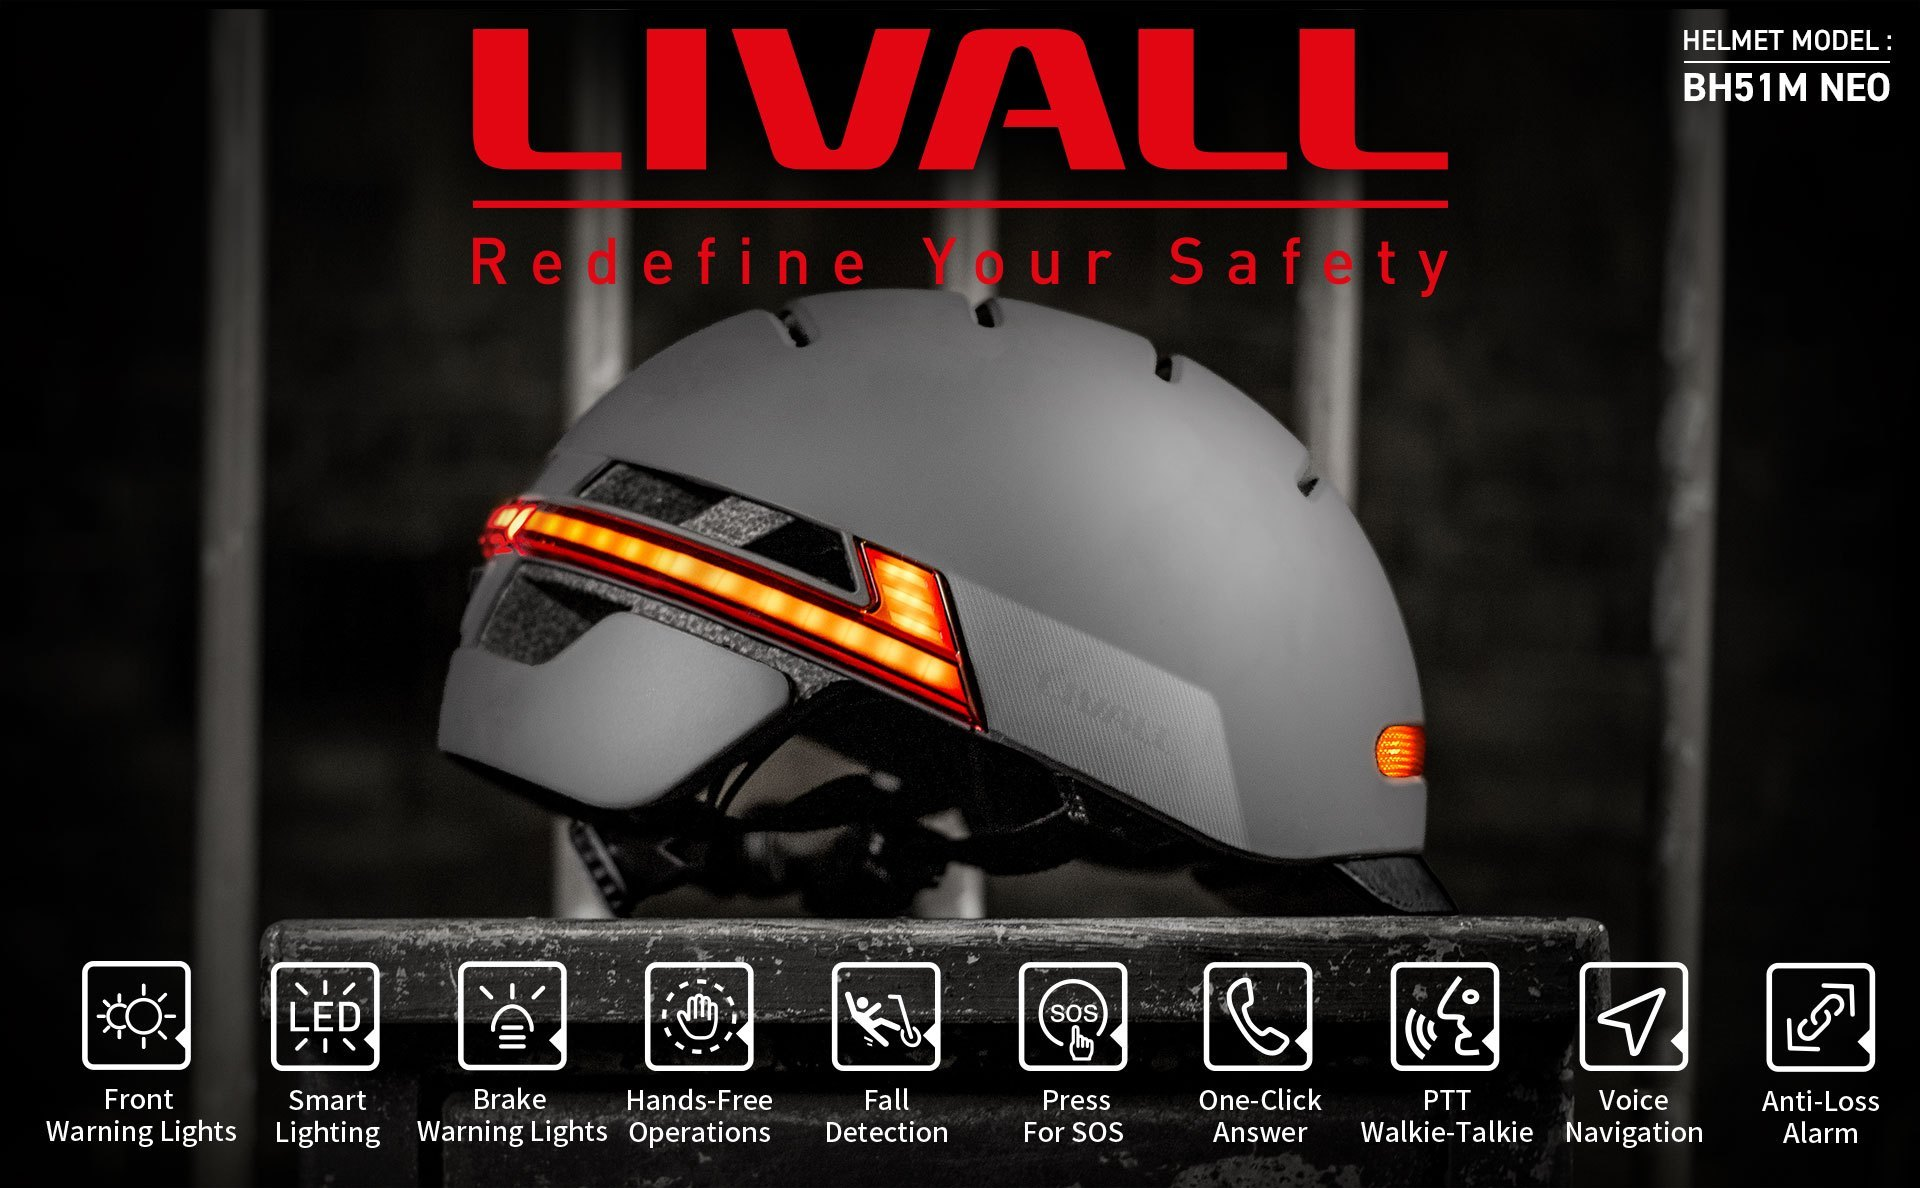 Livall BH51M NEO Cycling Helmet Review – The Perfect commuters helmet with brake lights, fall detection, and speakers